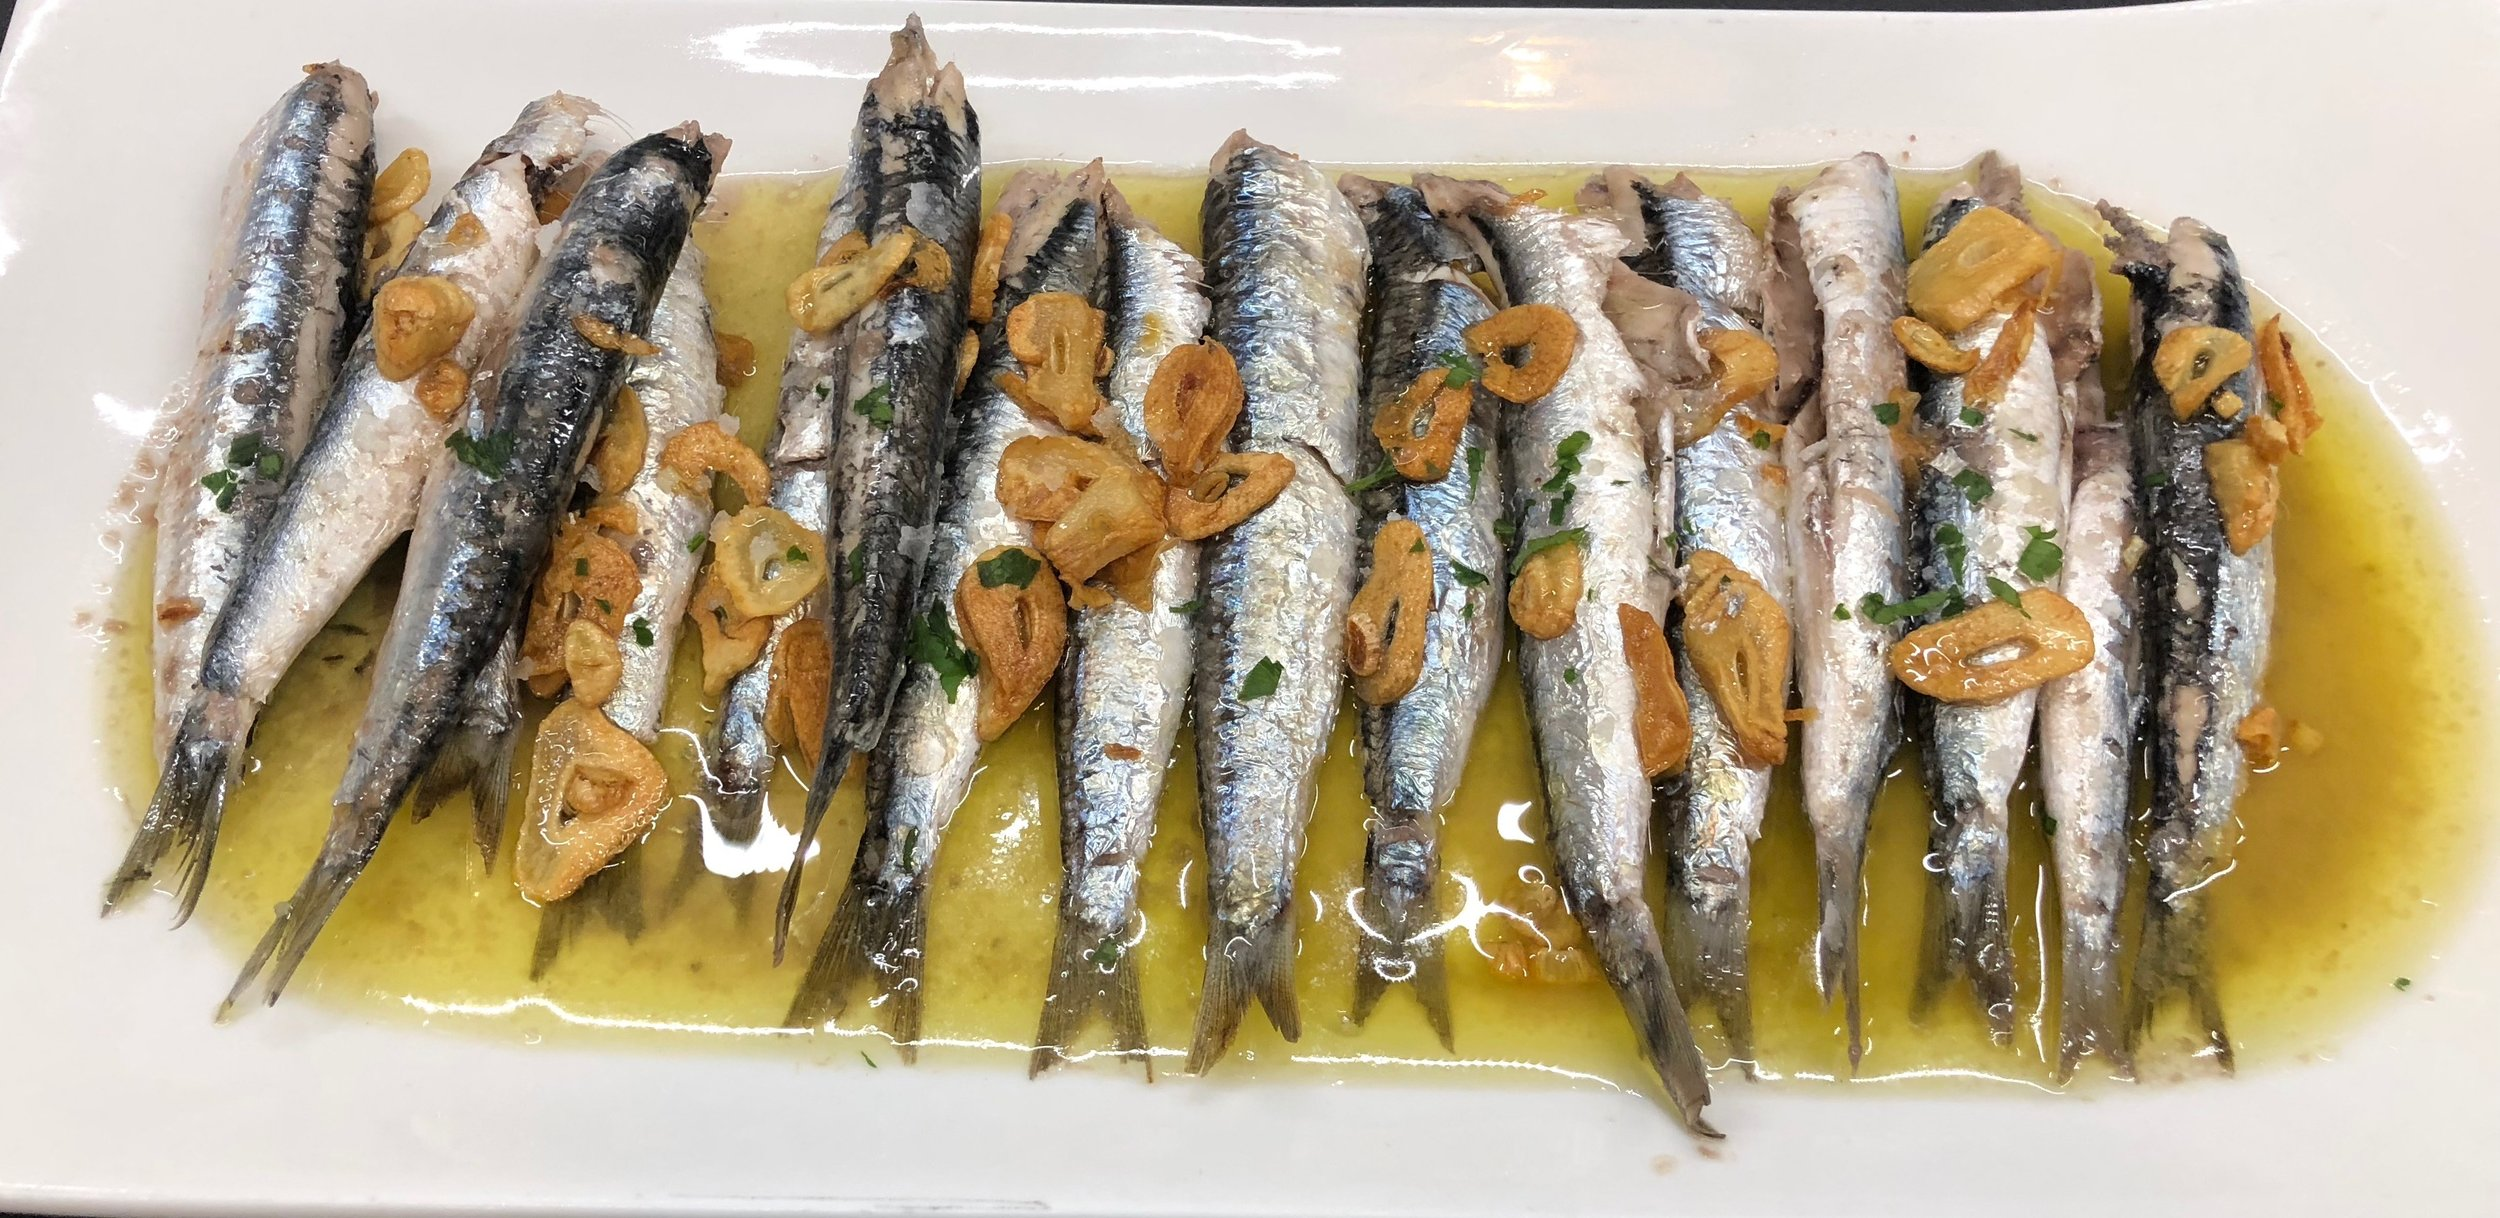 Anchovies in oil and garlic